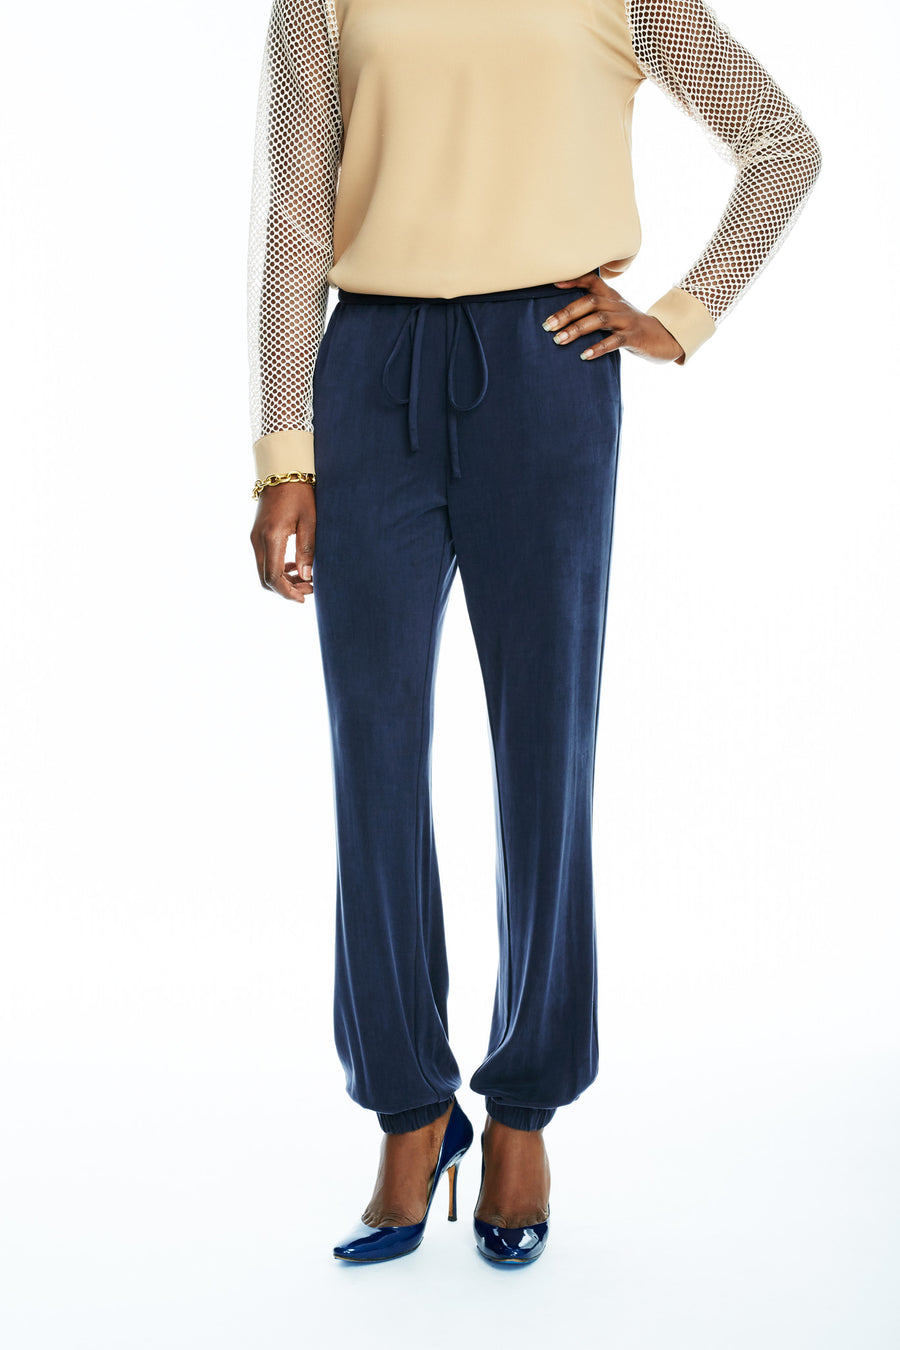 Style Shown: Tie Waist Gathered Cuff